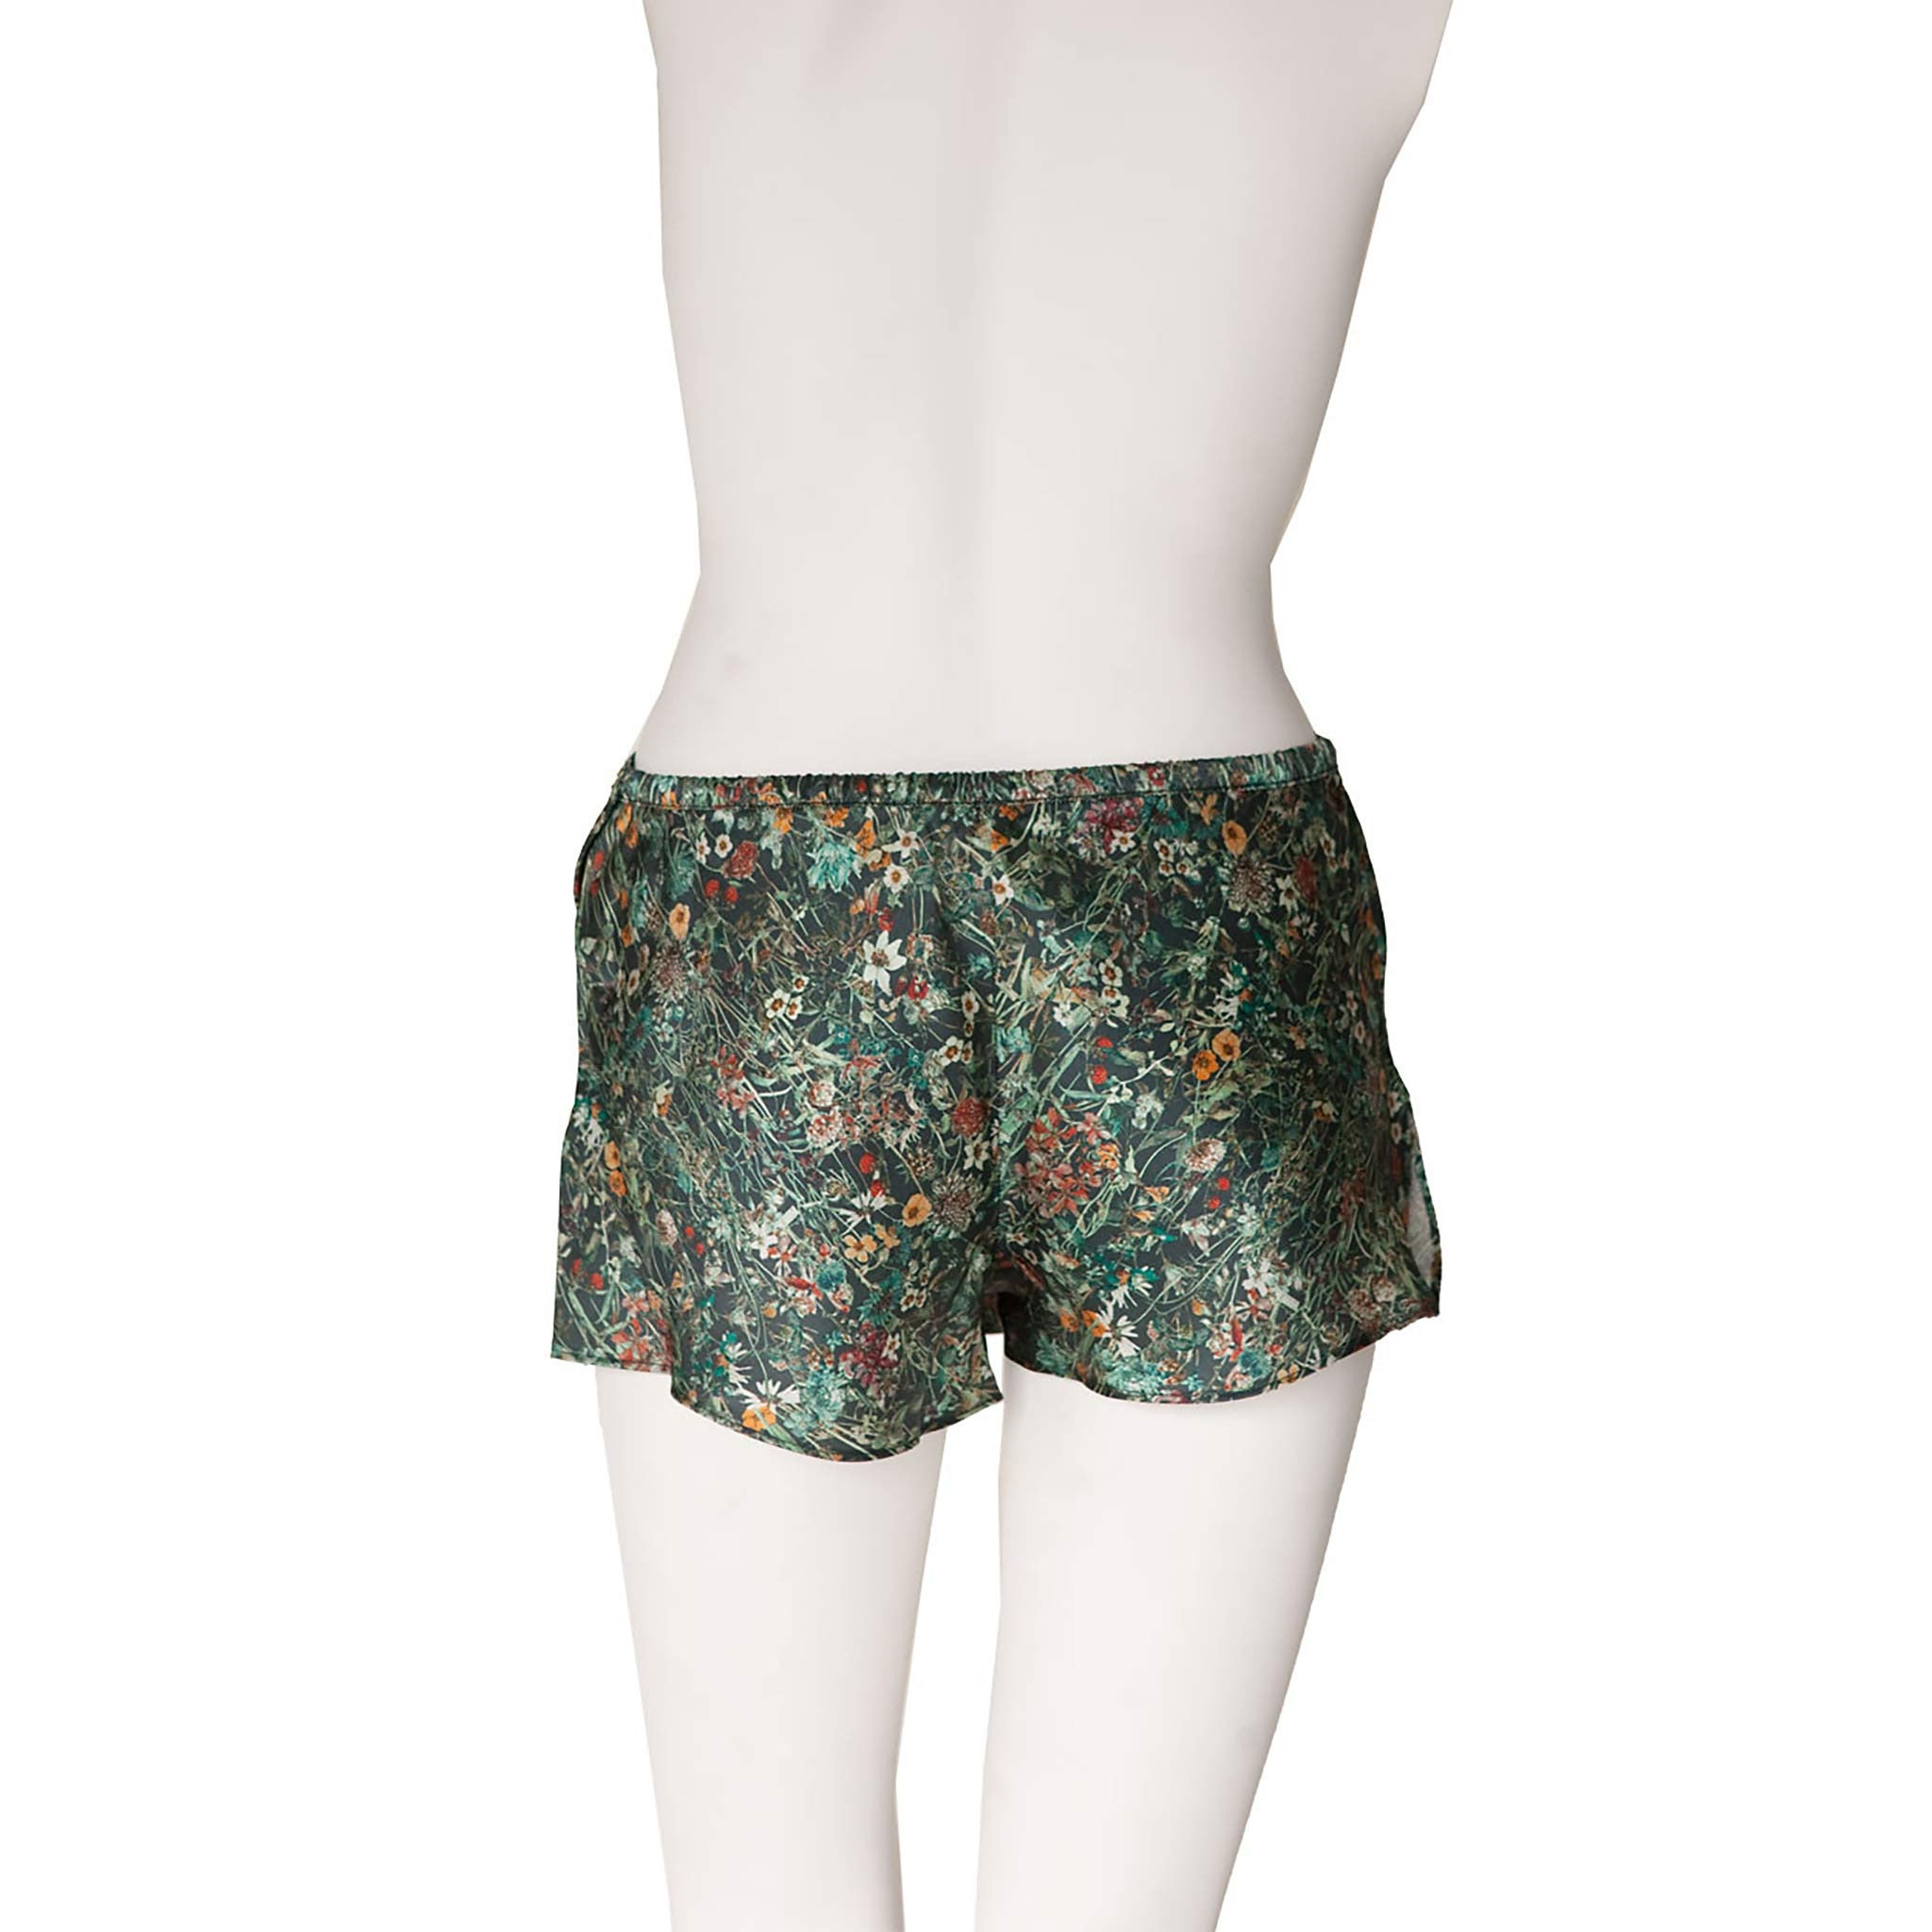 Sita Knickers in Emerald Liberty Print Silk Satin